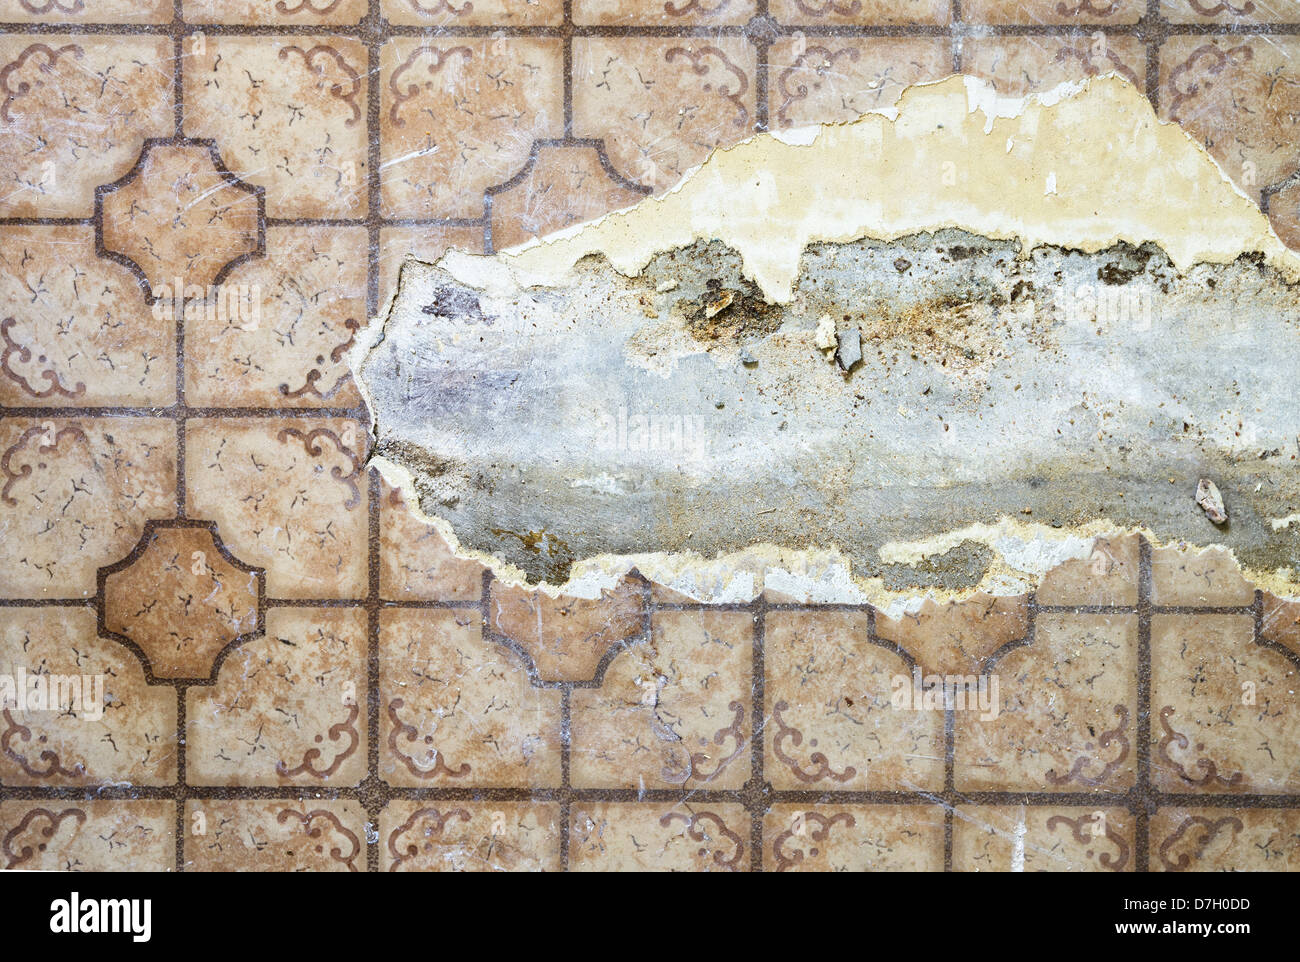 ripped and damaged linoleum floor over concrete - Stock Image